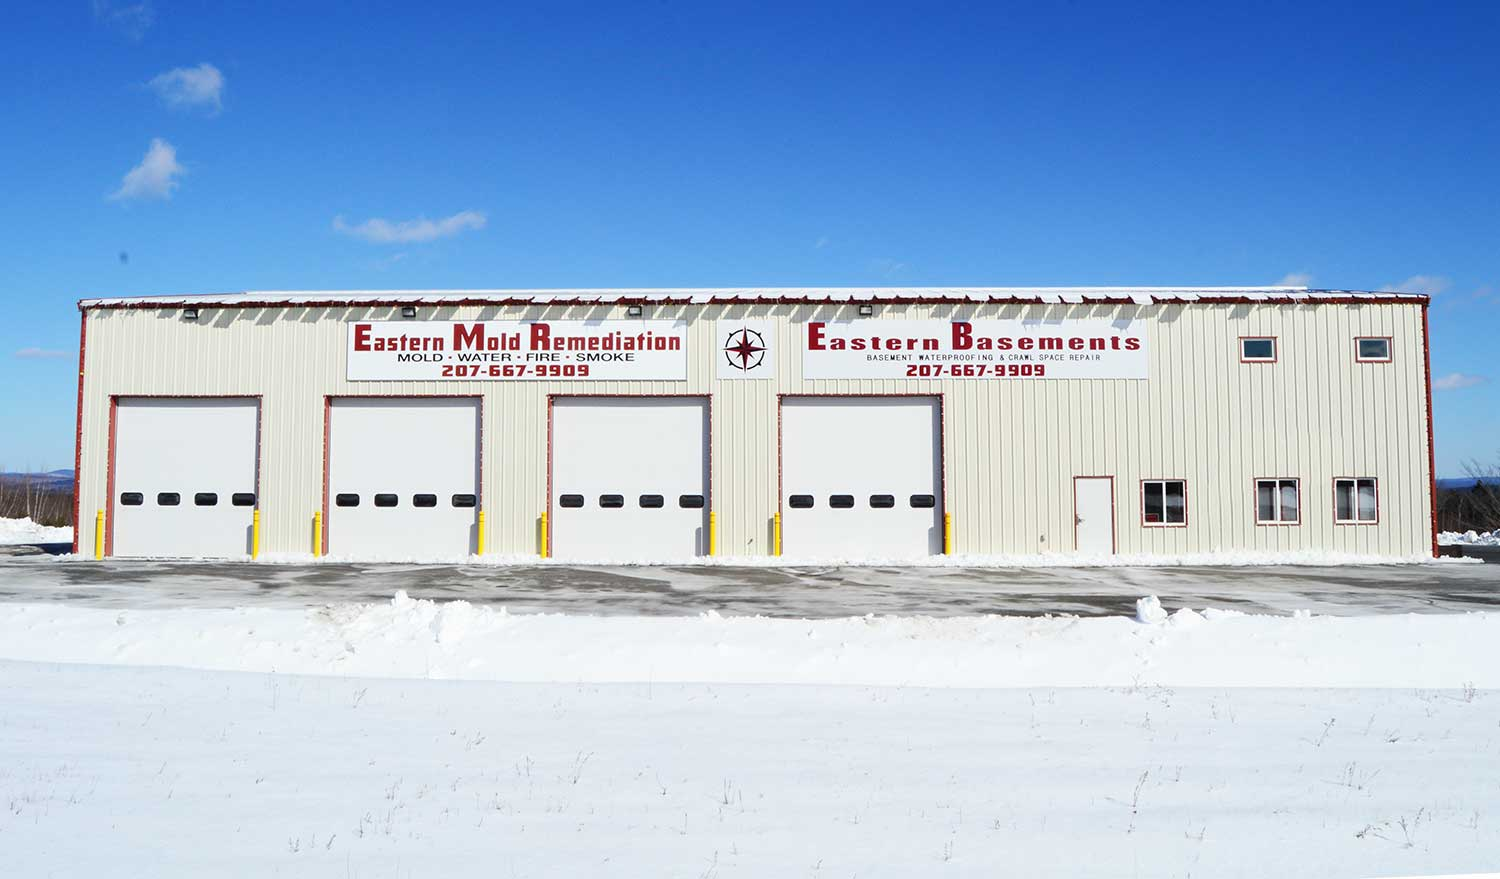 Eastern Mold Remediation Ellsworth Maine front of building